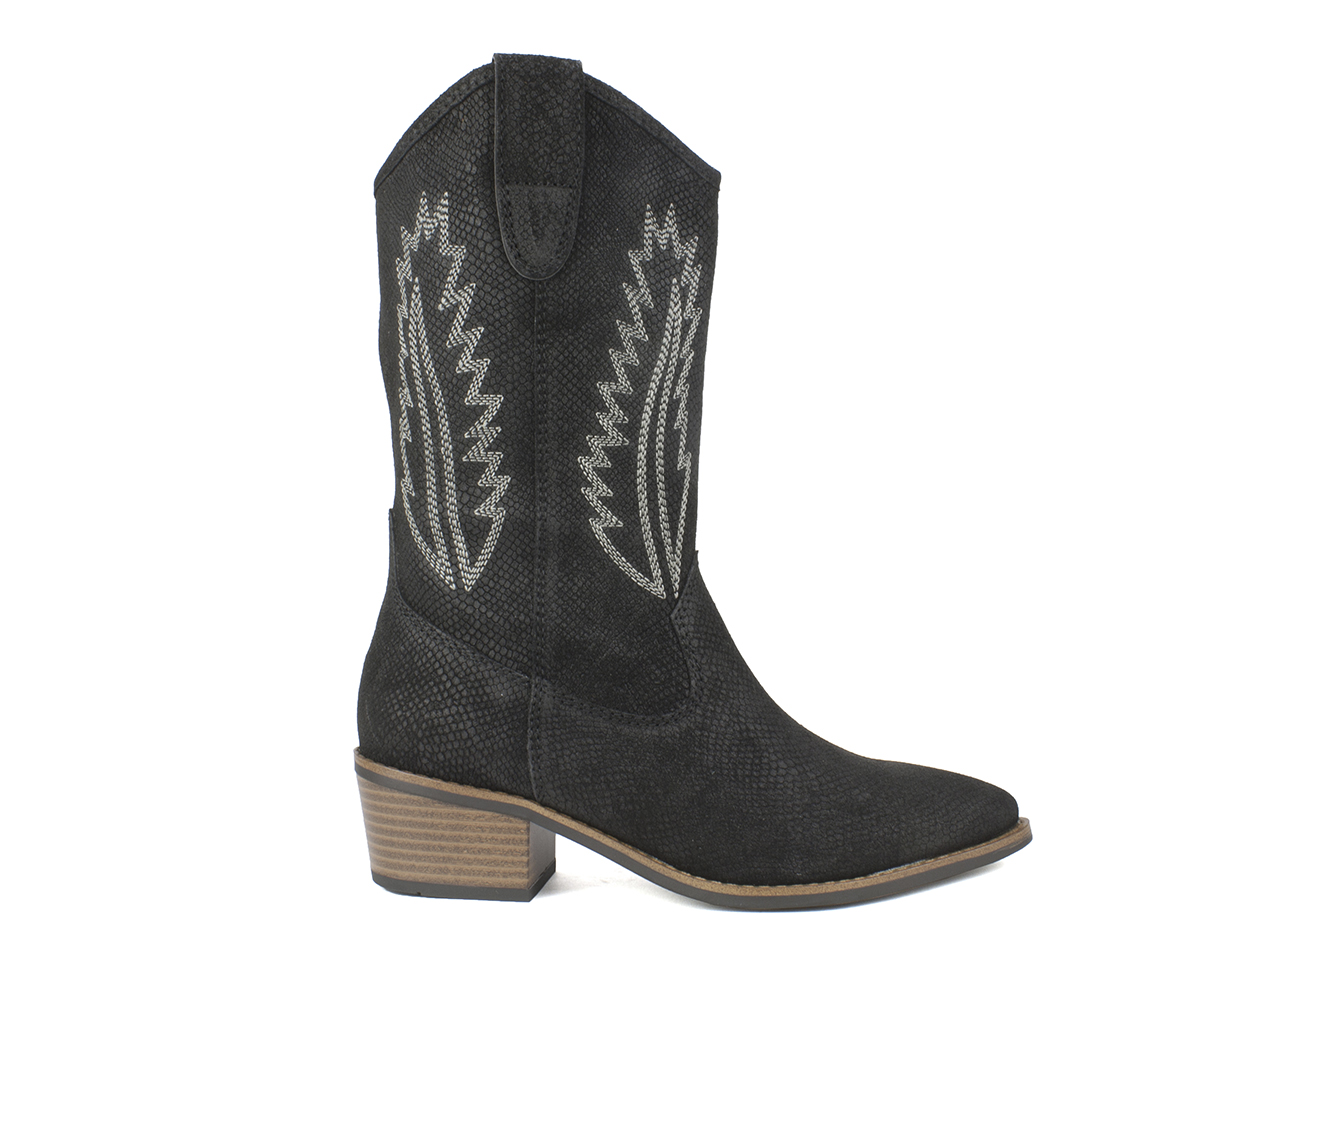 White Mountain Caraway Women's Boots (Black - Leather)